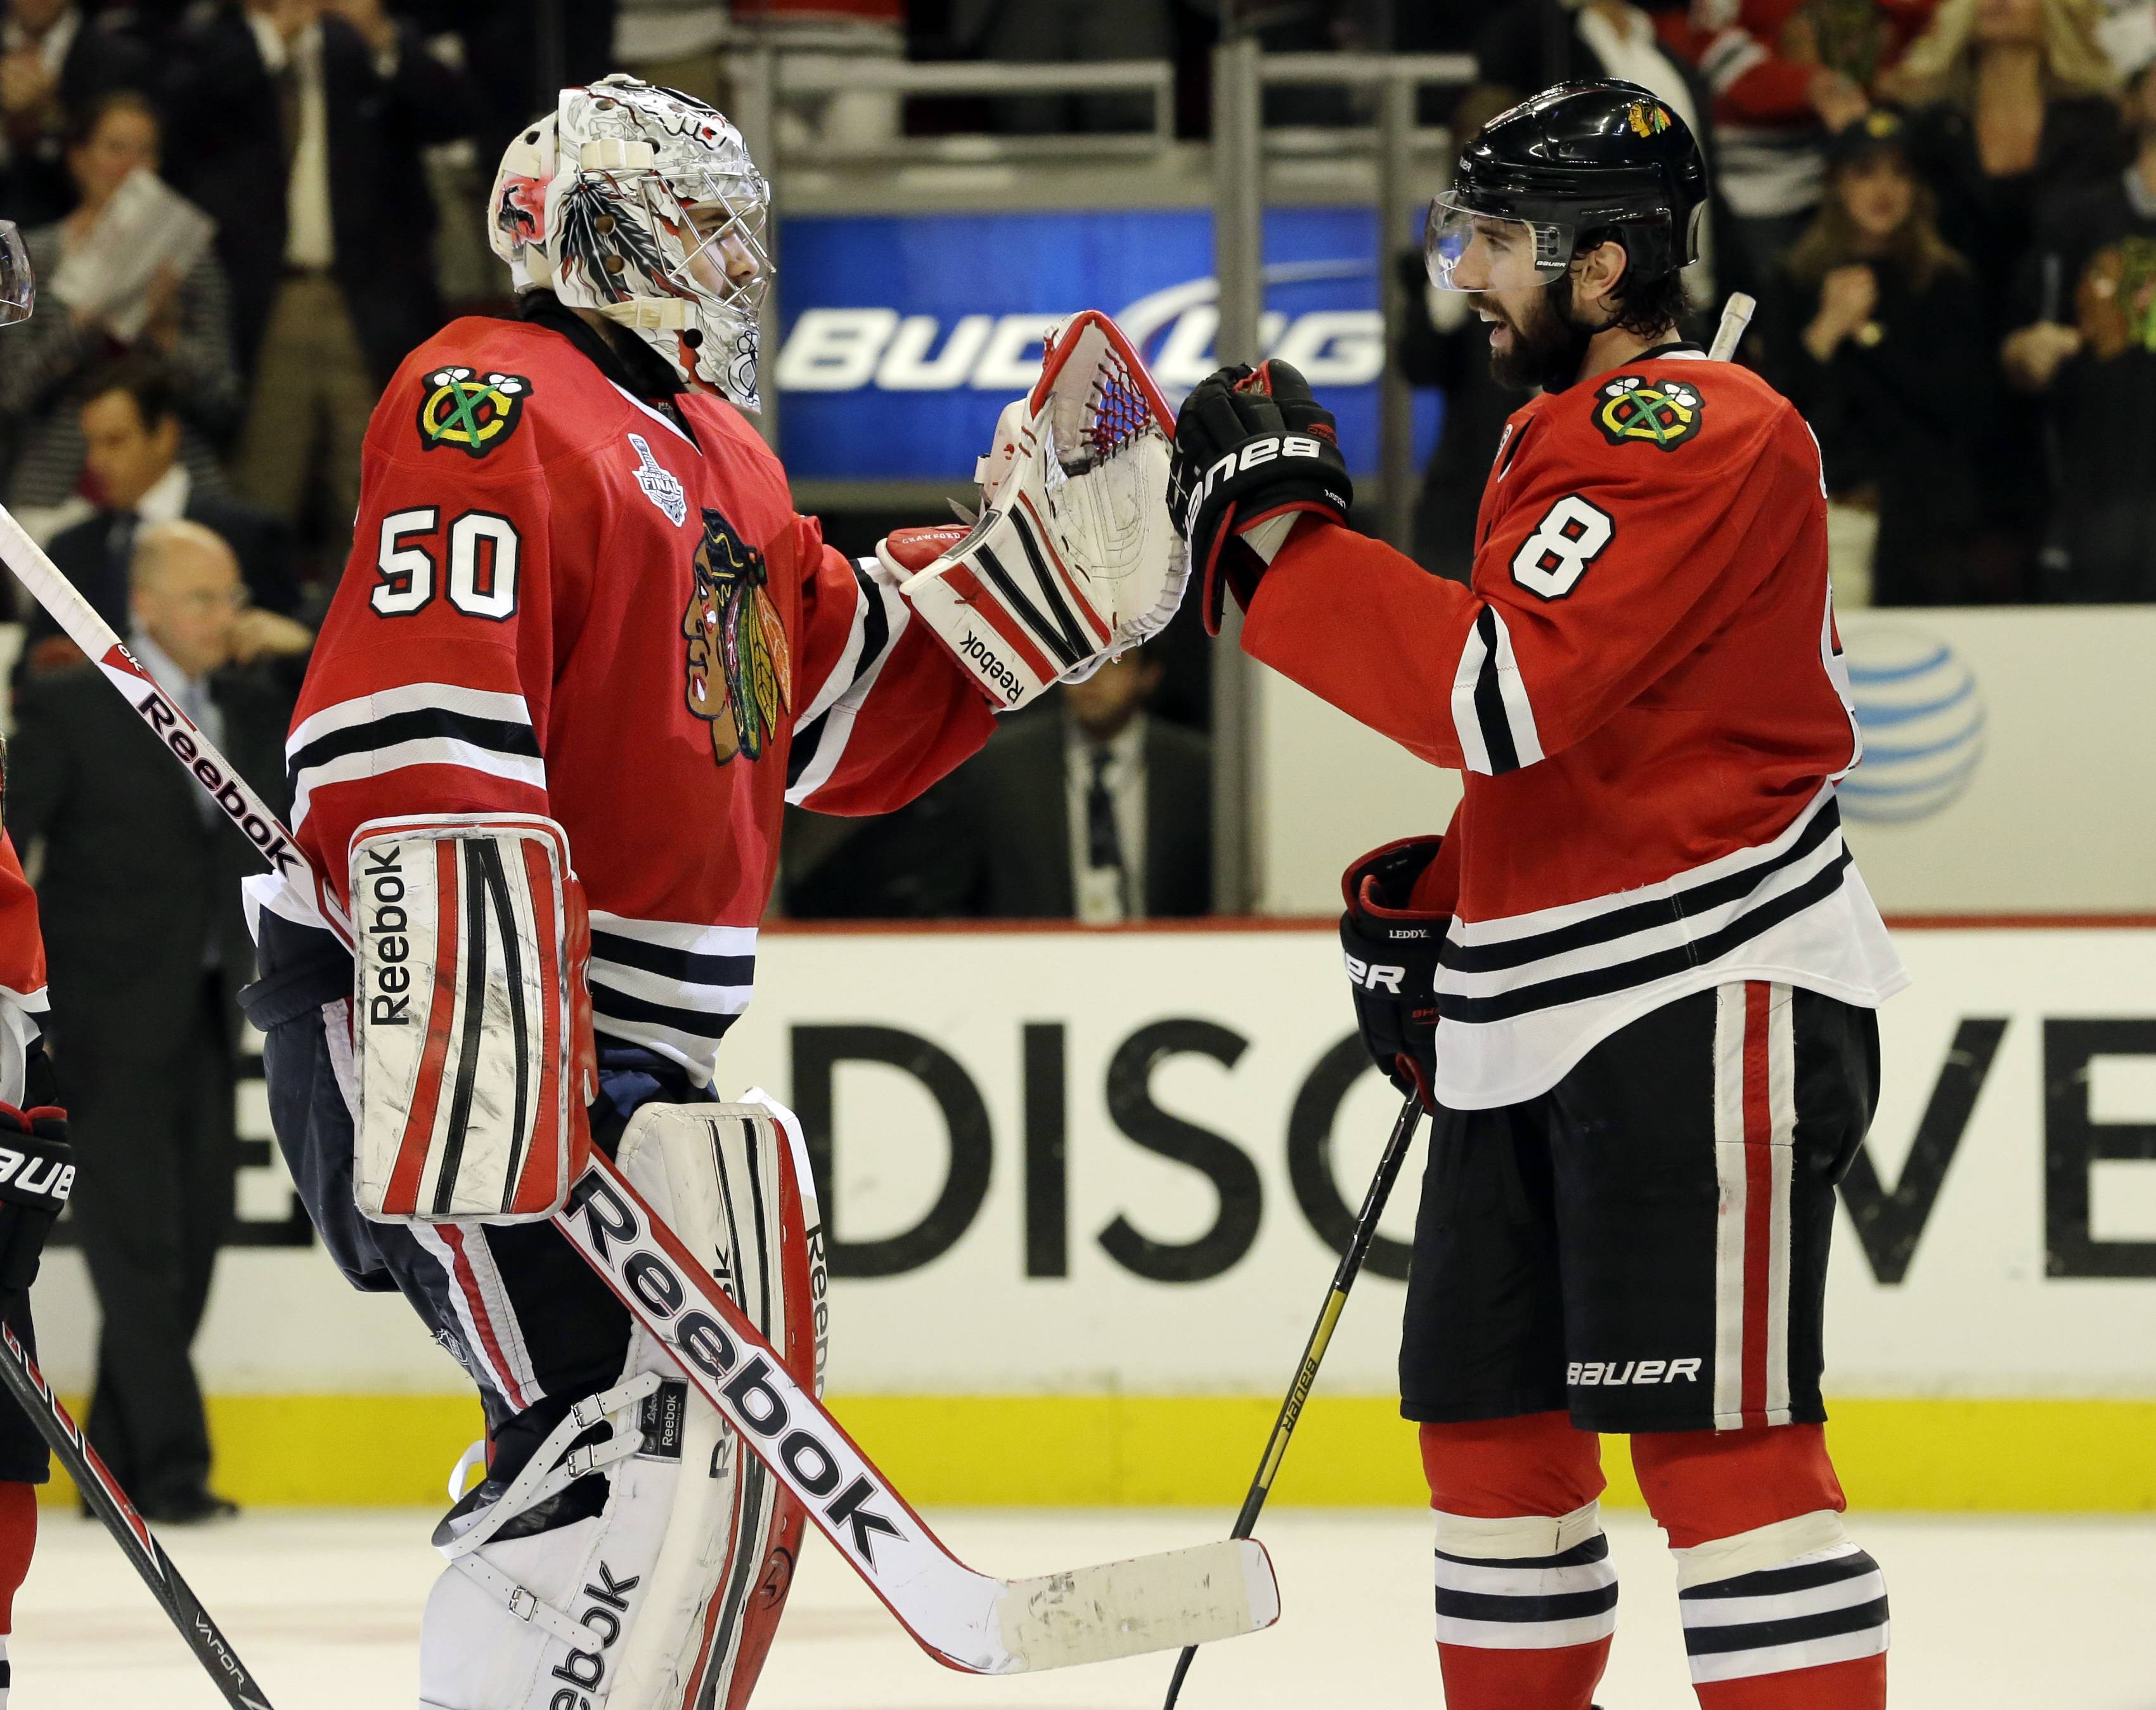 Chicago Blackhawks goalie Corey Crawford (50) celebrates with defenseman Nick Leddy (8) during the third overtime period of Game 1 in their NHL Stanley Cup Final hockey series, Thursday, June 13, 2013, in Chicago.